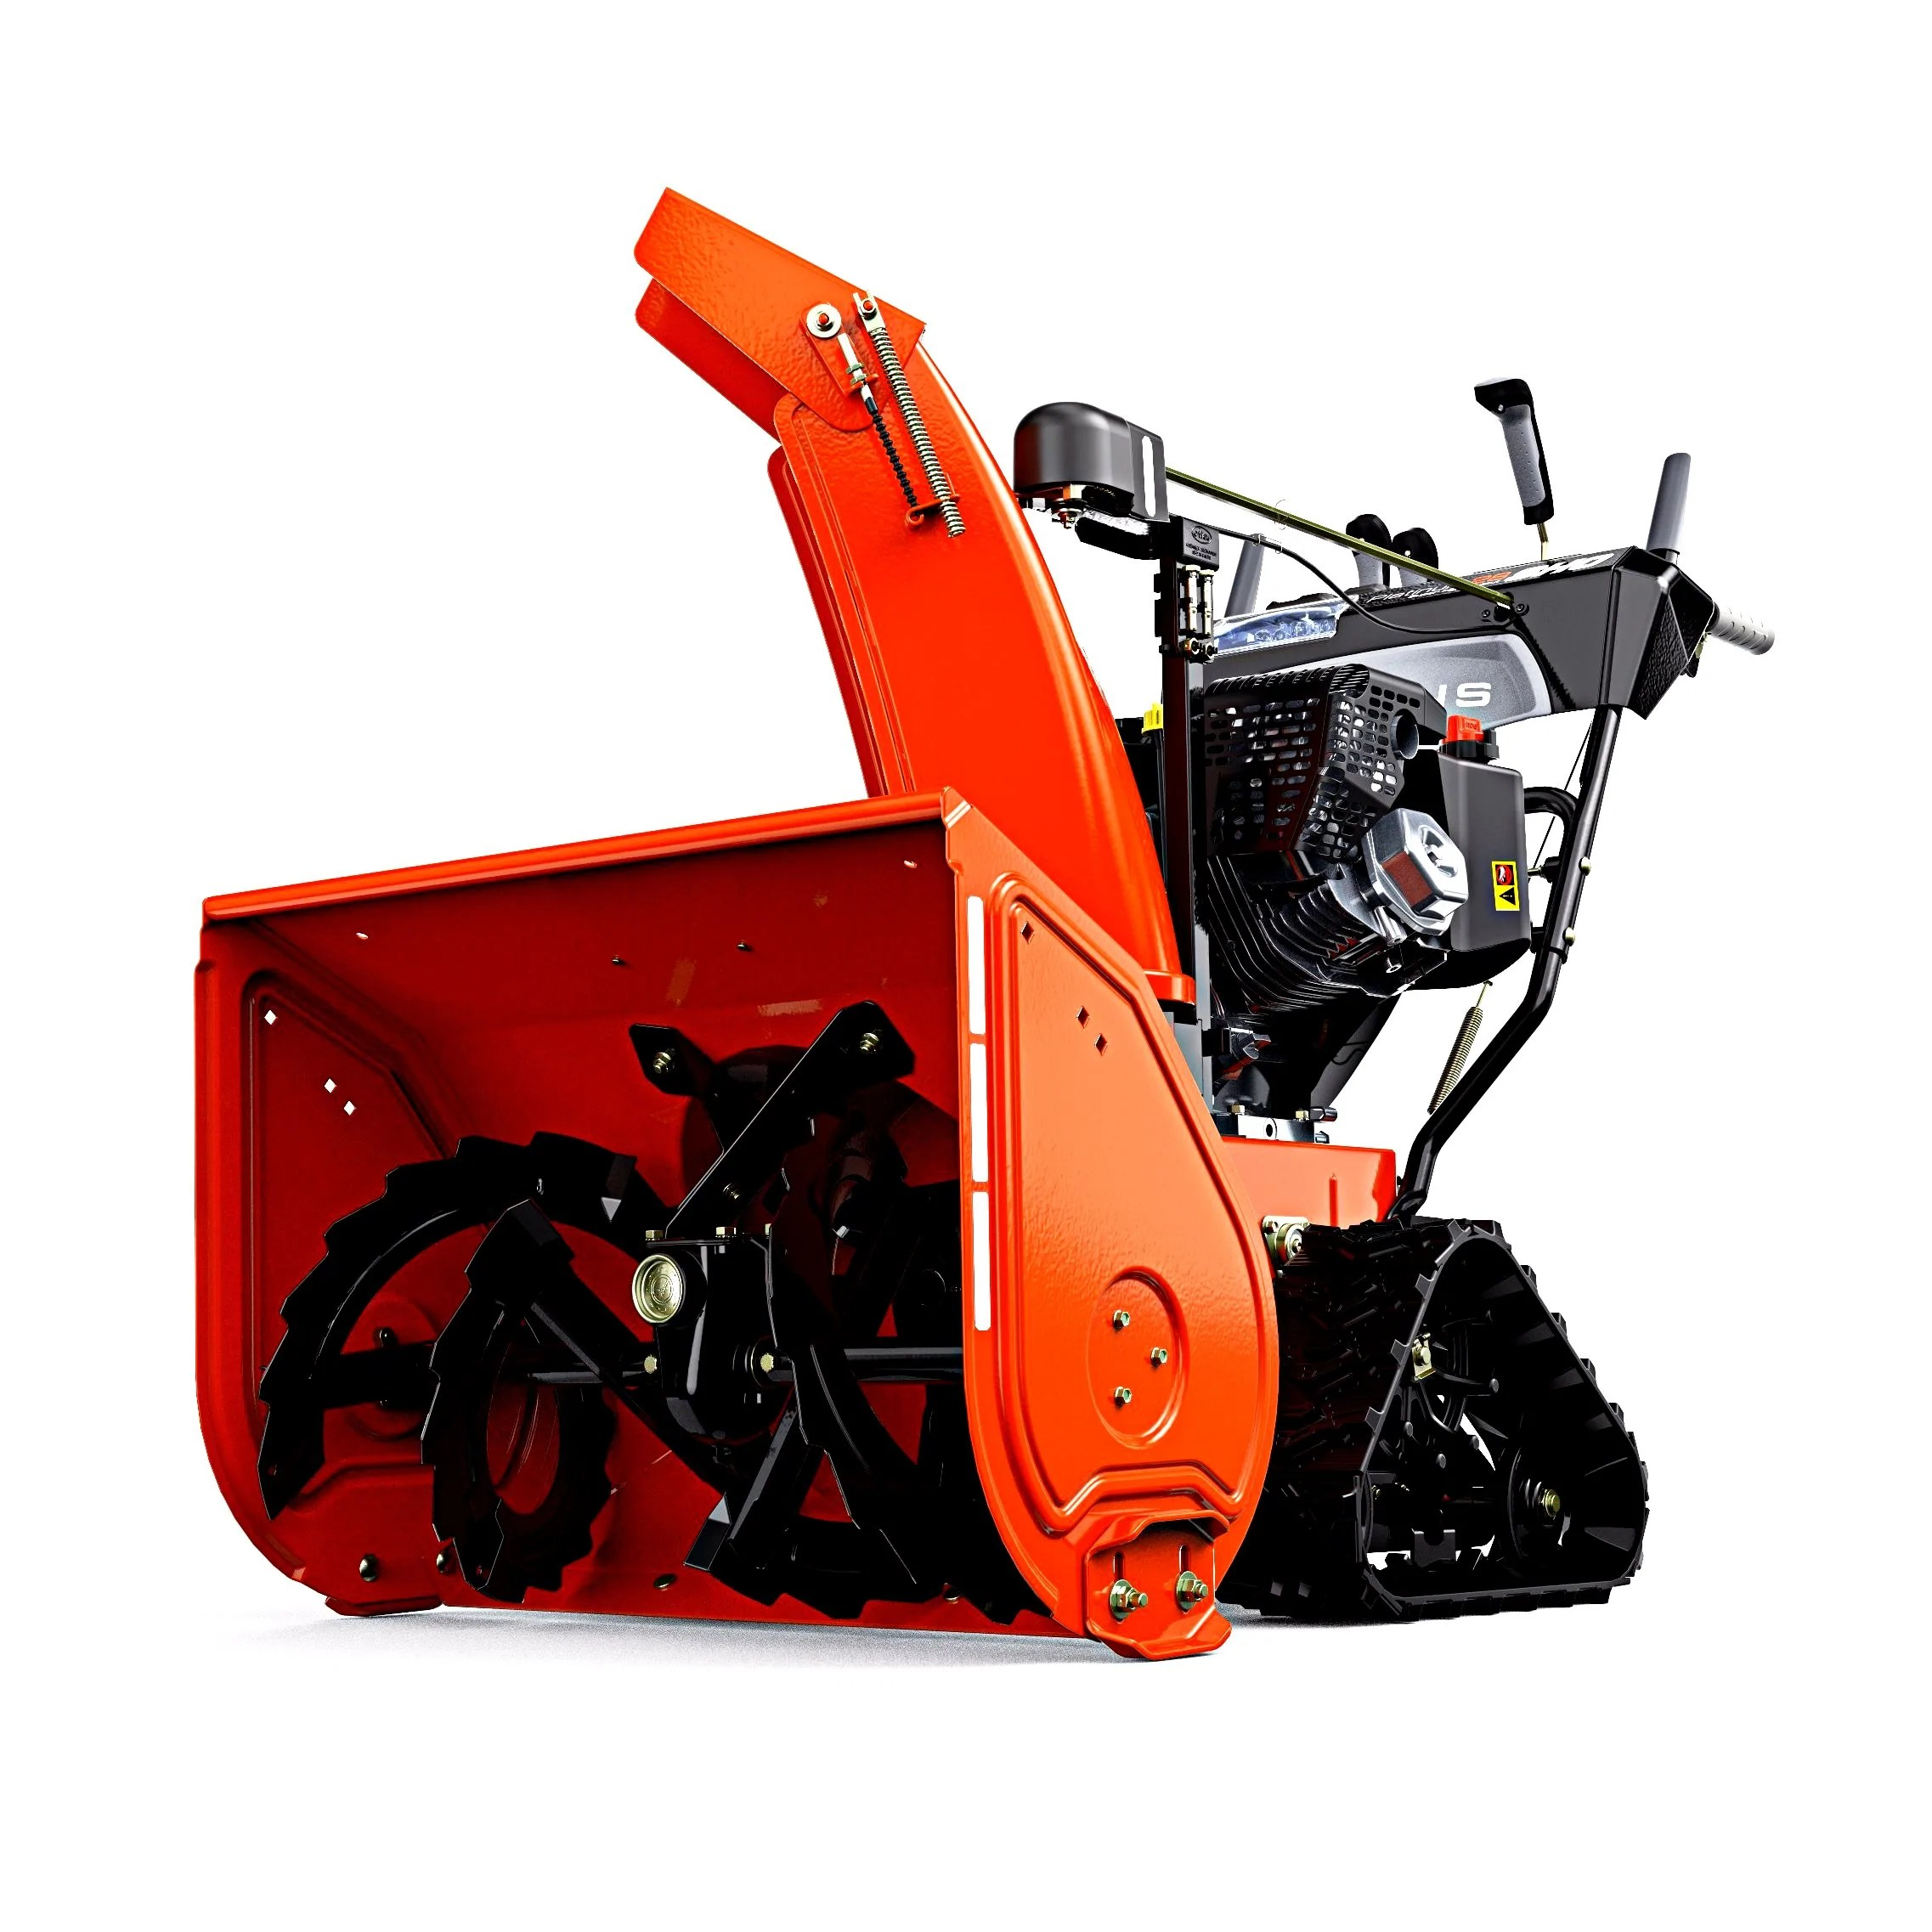 Ariens Platinum Track 28 Sho 28 369cc Two Stage Snow Blower Mowtown Waldo Implement Inc - Ariens Snow Thrower